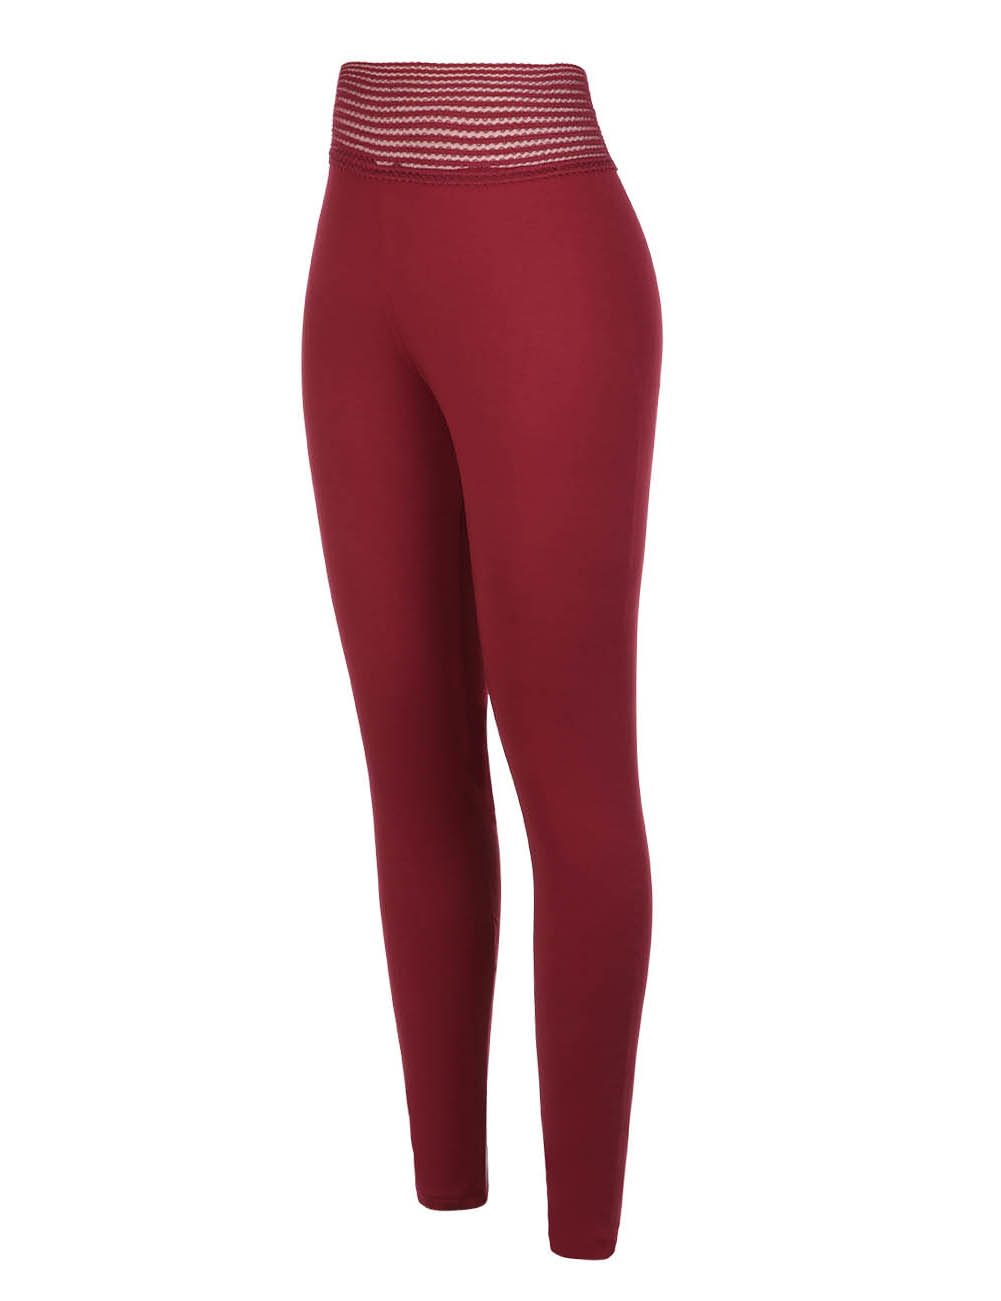 //cdn.affectcloud.com/hexinfashion/upload/imgs/SPORTSWEAR/Yoga_Legging/P180085-RD3/P180085-RD3-202002115e420569c500d.jpg